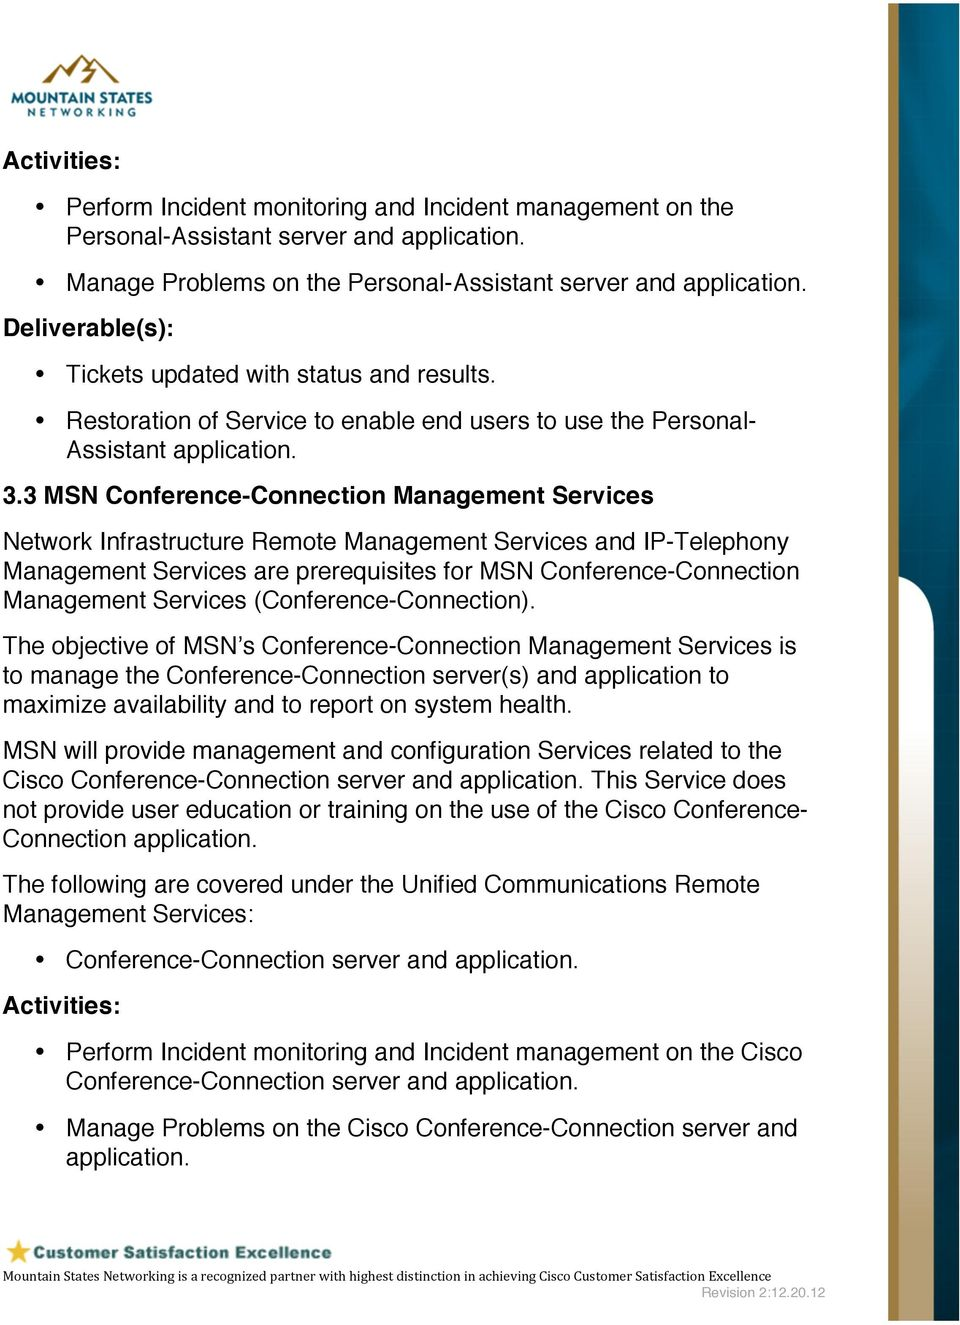 3 MSN Conference-Connection Management Services Network Infrastructure Remote Management Services and IP-Telephony Management Services are prerequisites for MSN Conference-Connection Management